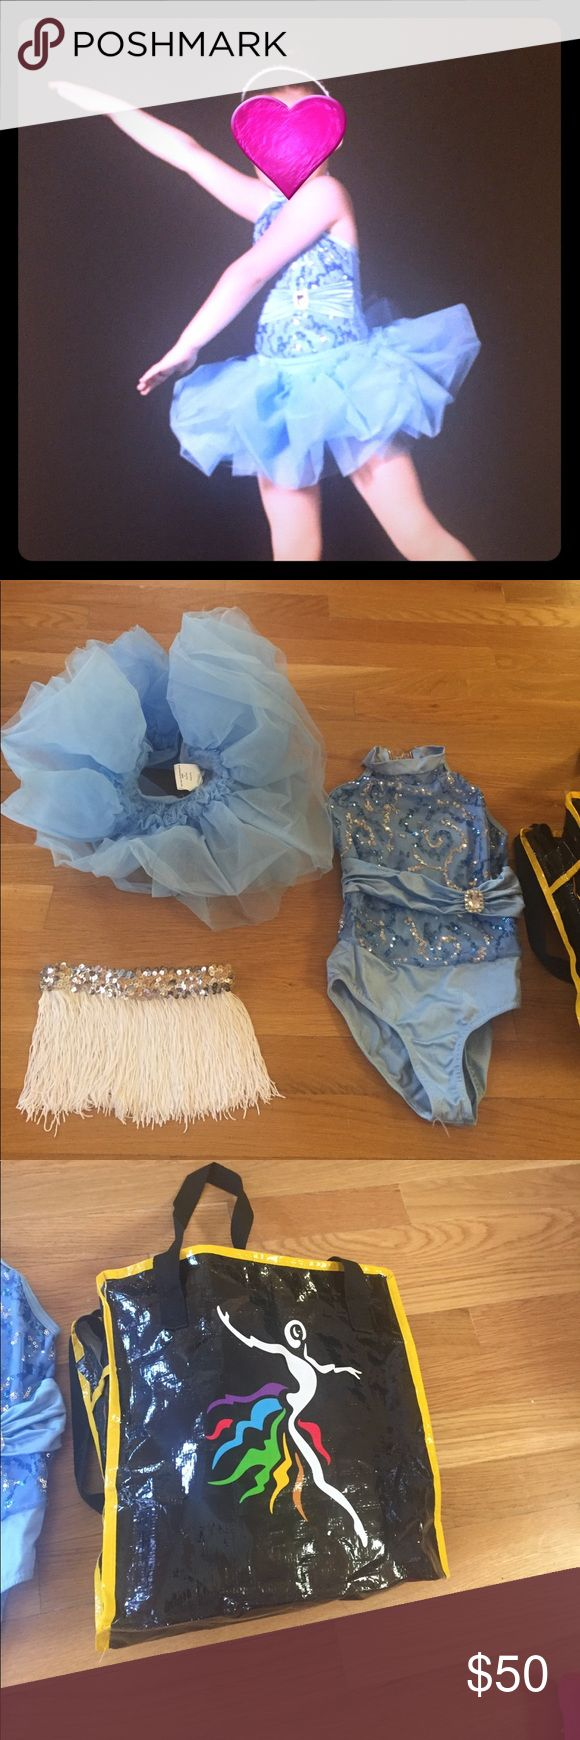 Girls dance costume with two skirts and bag Girls dance cotume. Blue with sequin. Size small. With tutu and another string skirt with sequin elastic band. Bag included. Worn twice for rehearsal and show only. Great for dress up Costumes Dance